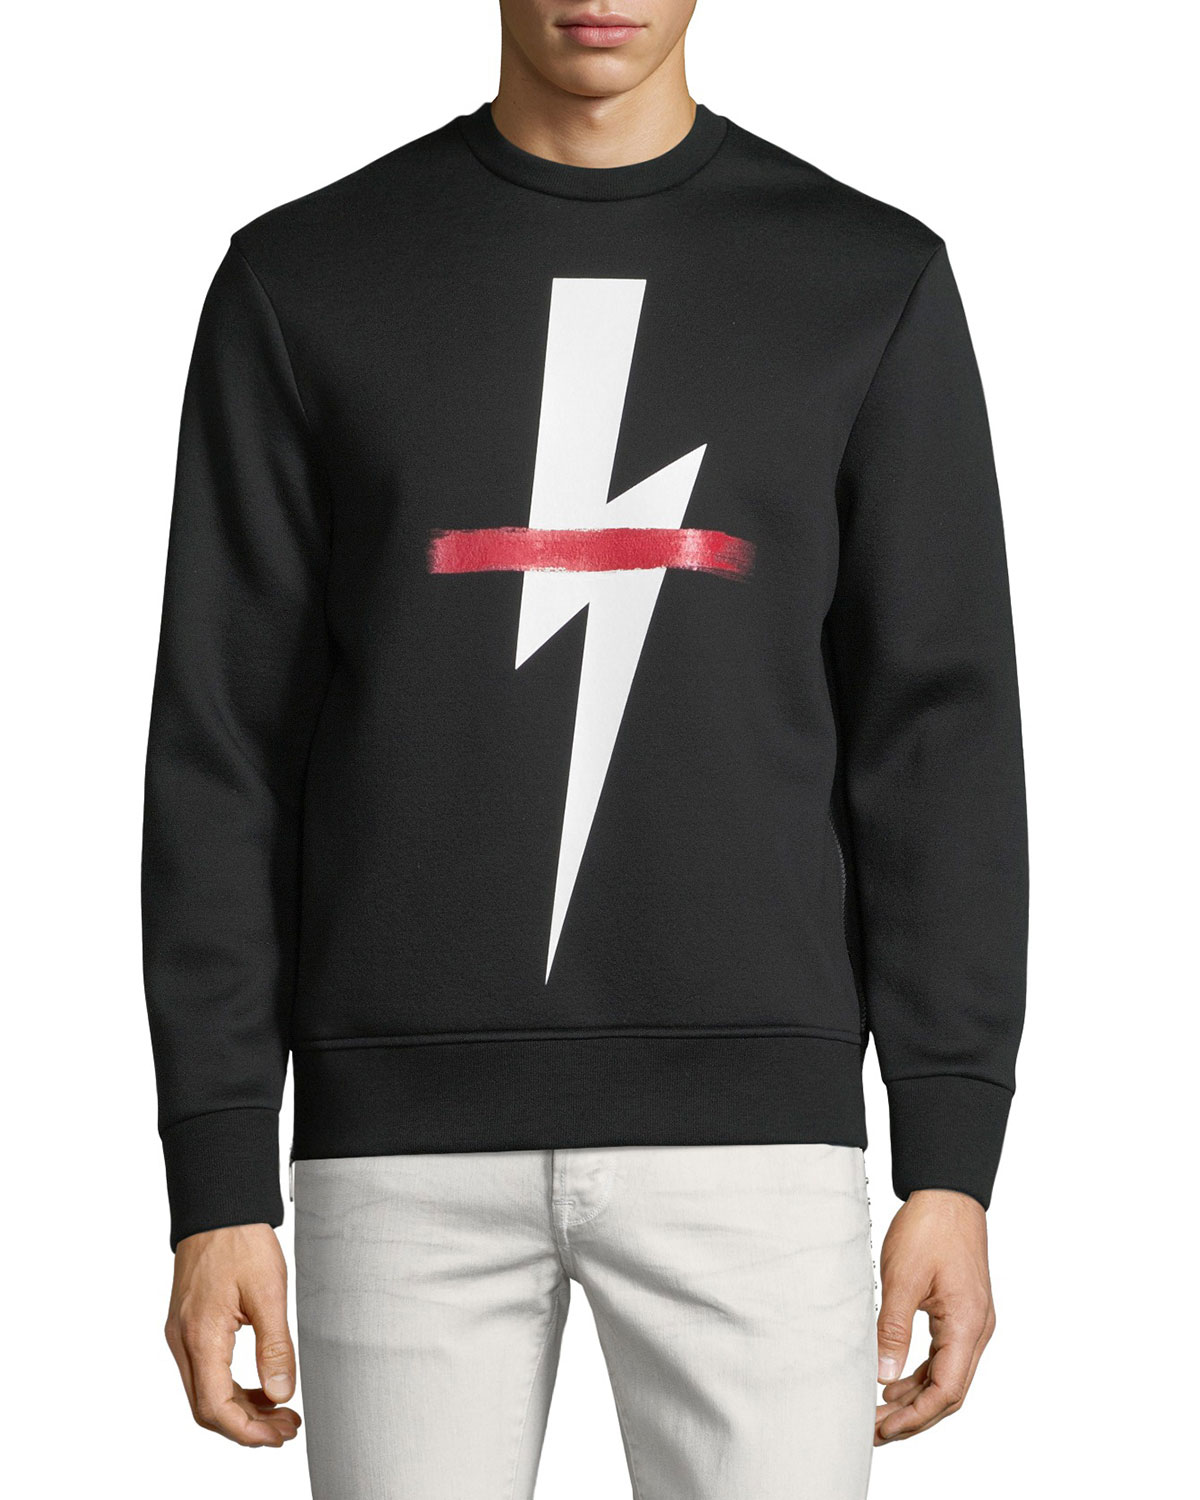 Crossed Out Bolt Graphic Sweatshirt